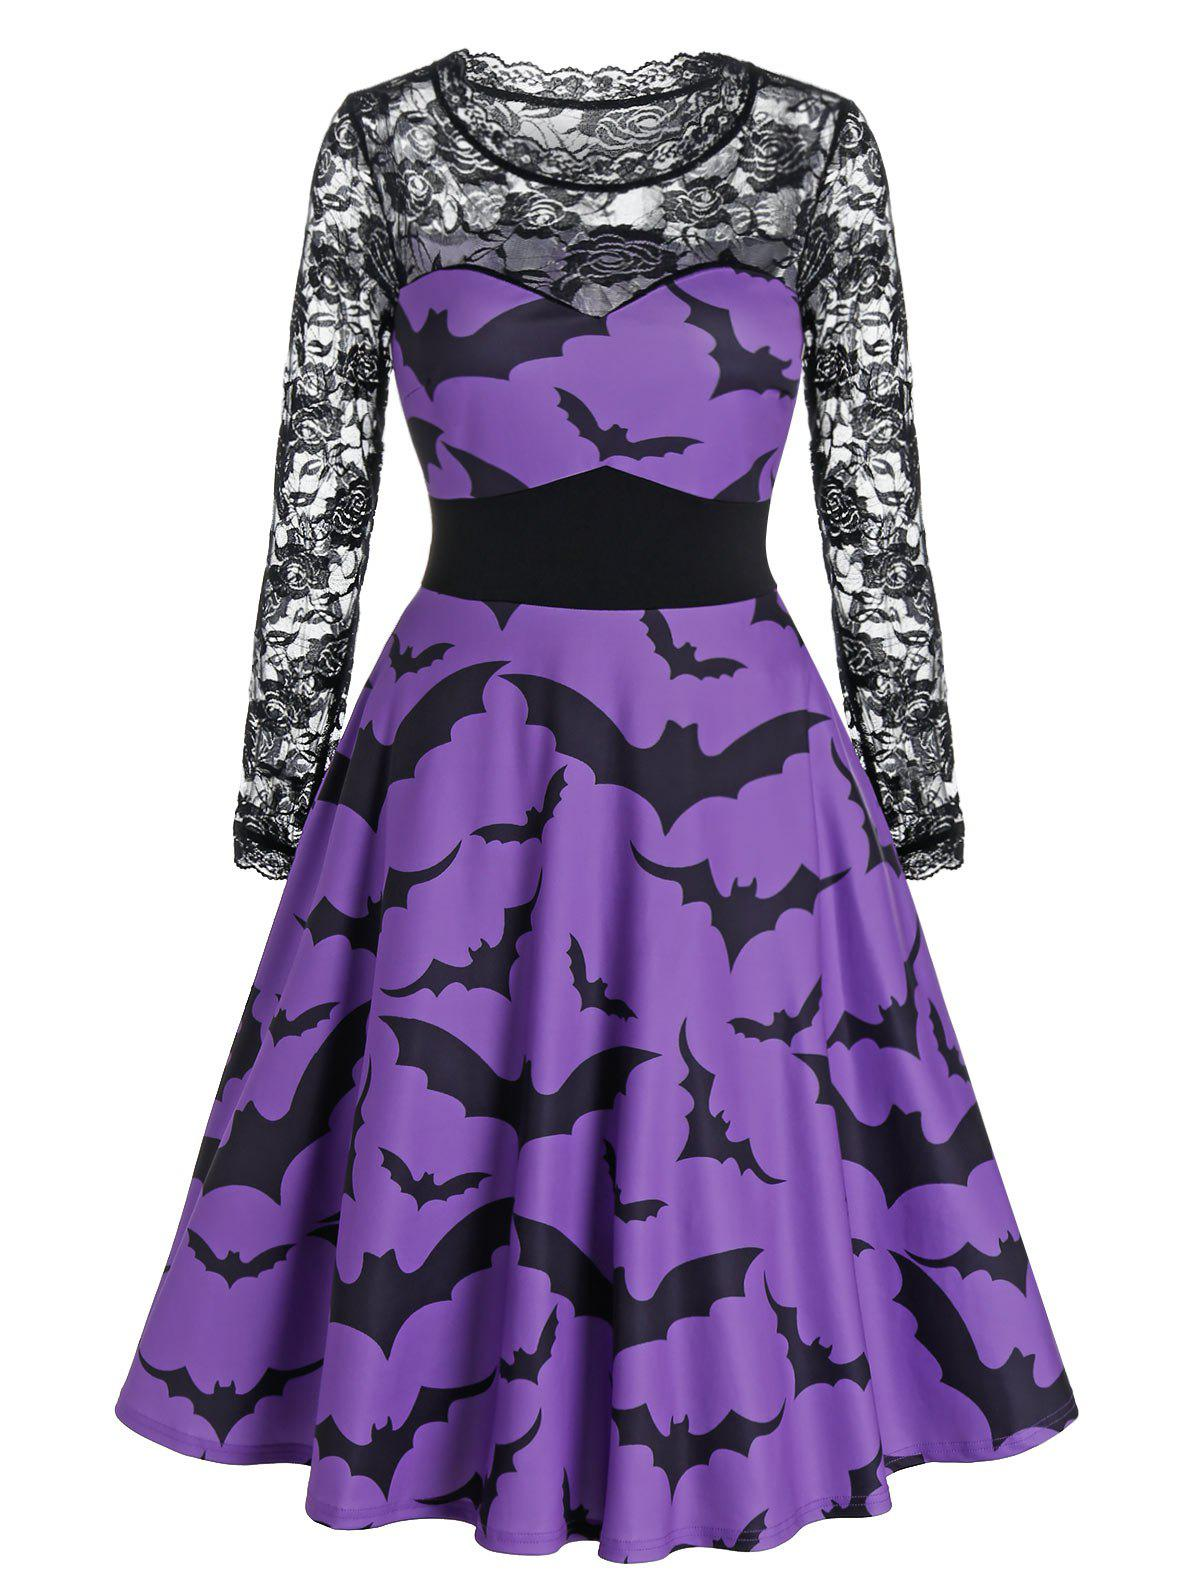 Halloween Bat Print Sheer Lace Panel High Waist Dress - PURPLE IRIS M